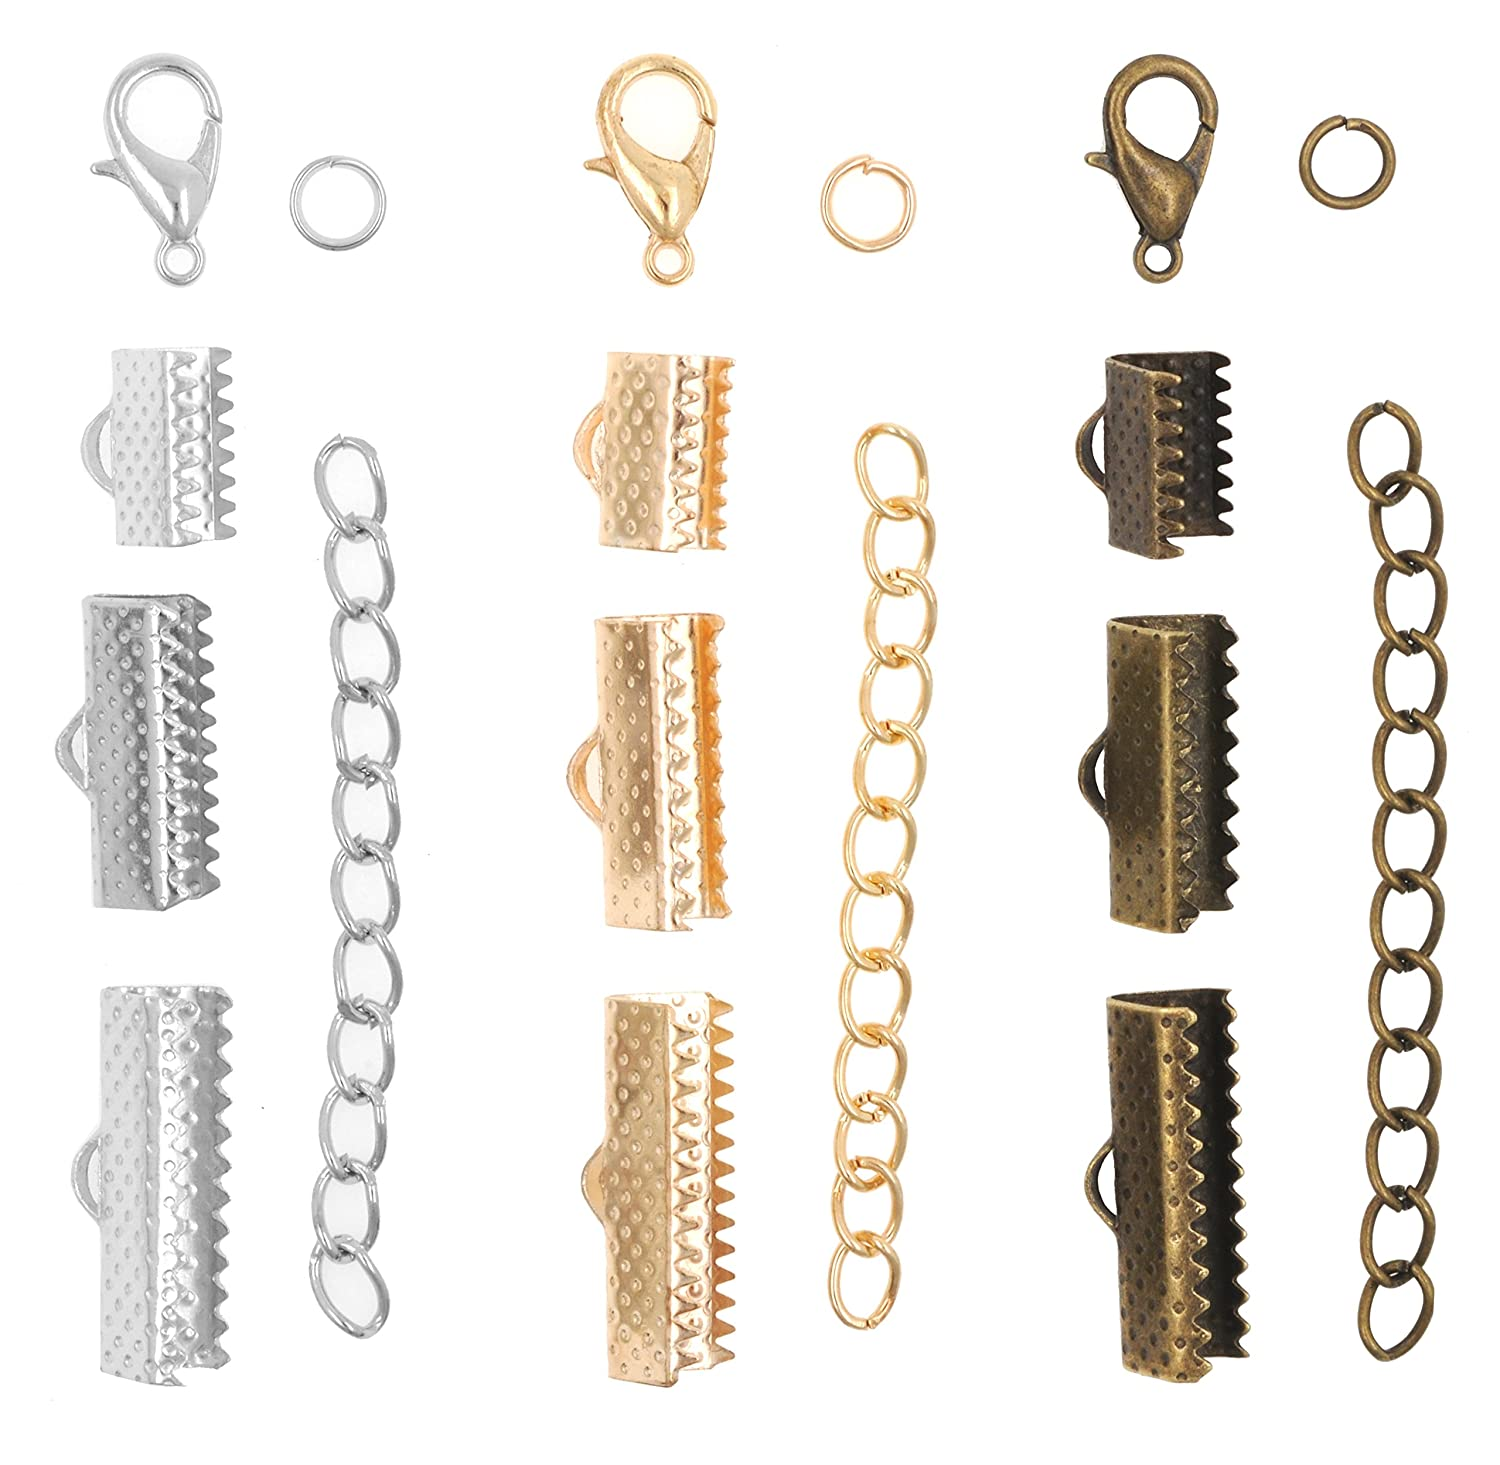 Jewelry Making Crimp Pinch Clasp Finding Box Kit for Bookmark Ribbon Clamp with Loop Mandala Crafts Fold Over Cord End Ribbon Flat Clamps